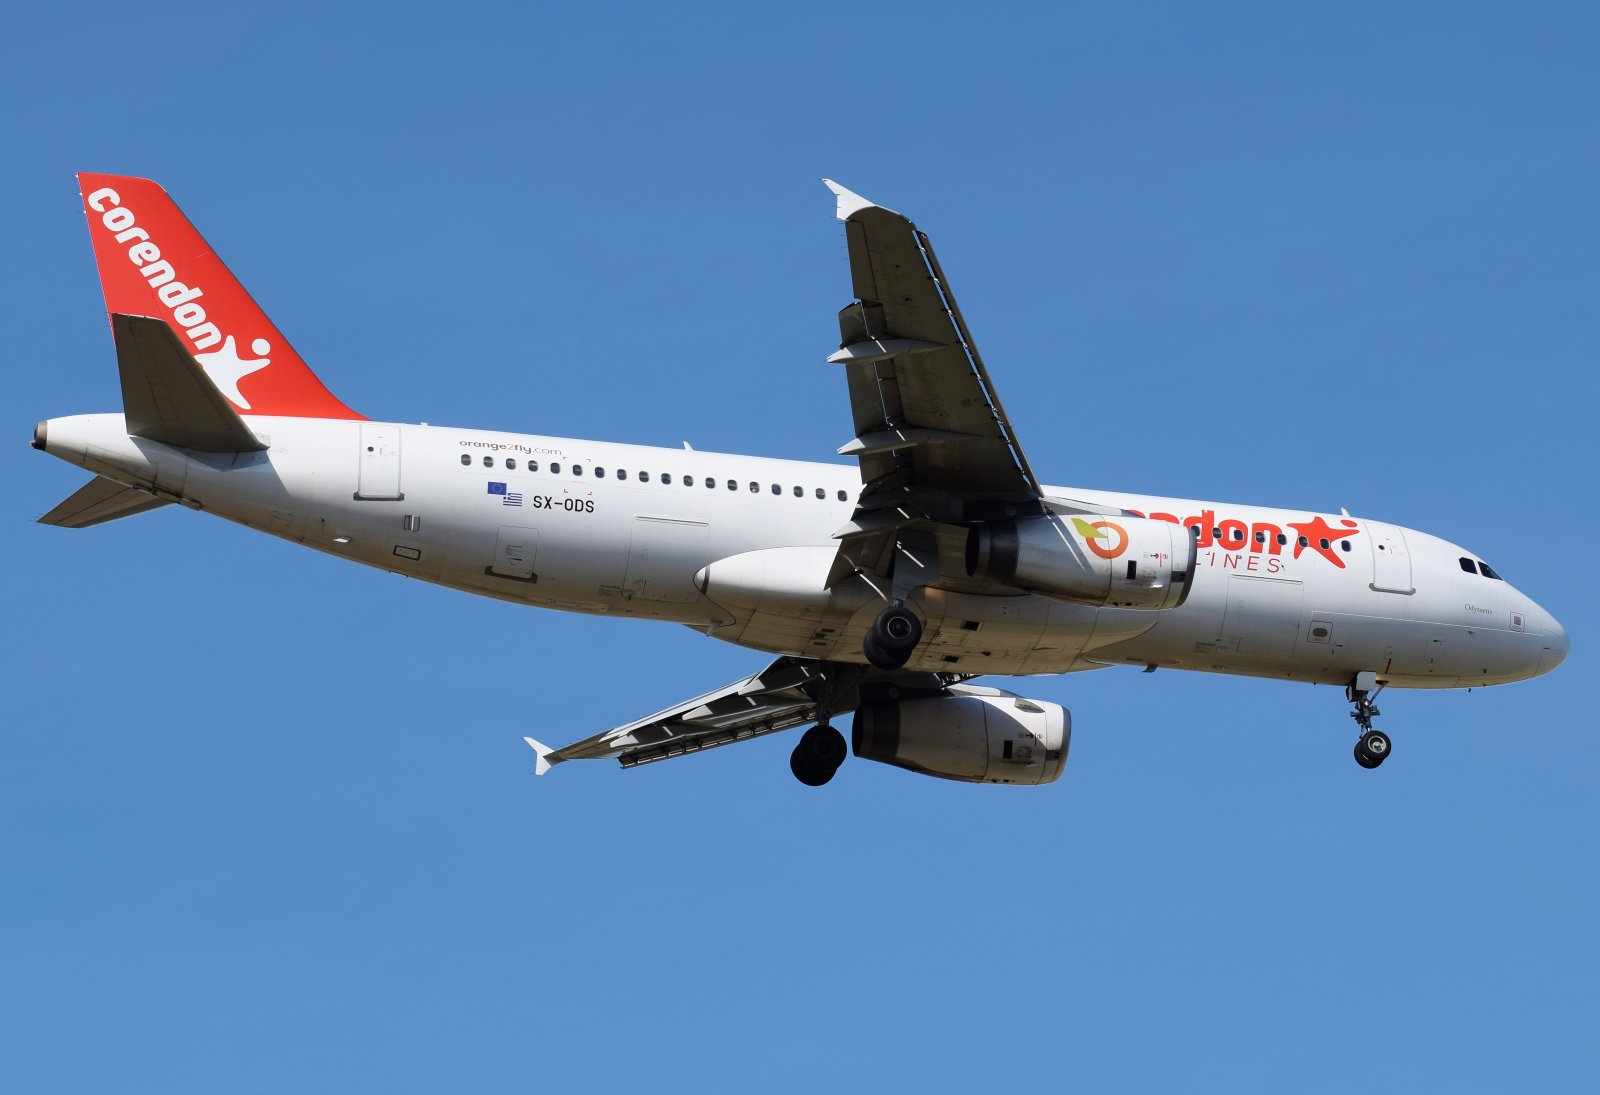 SX-ODS - Airbus A320-232 - Orange2fly (Corendon Airlines) - 11.5.2019